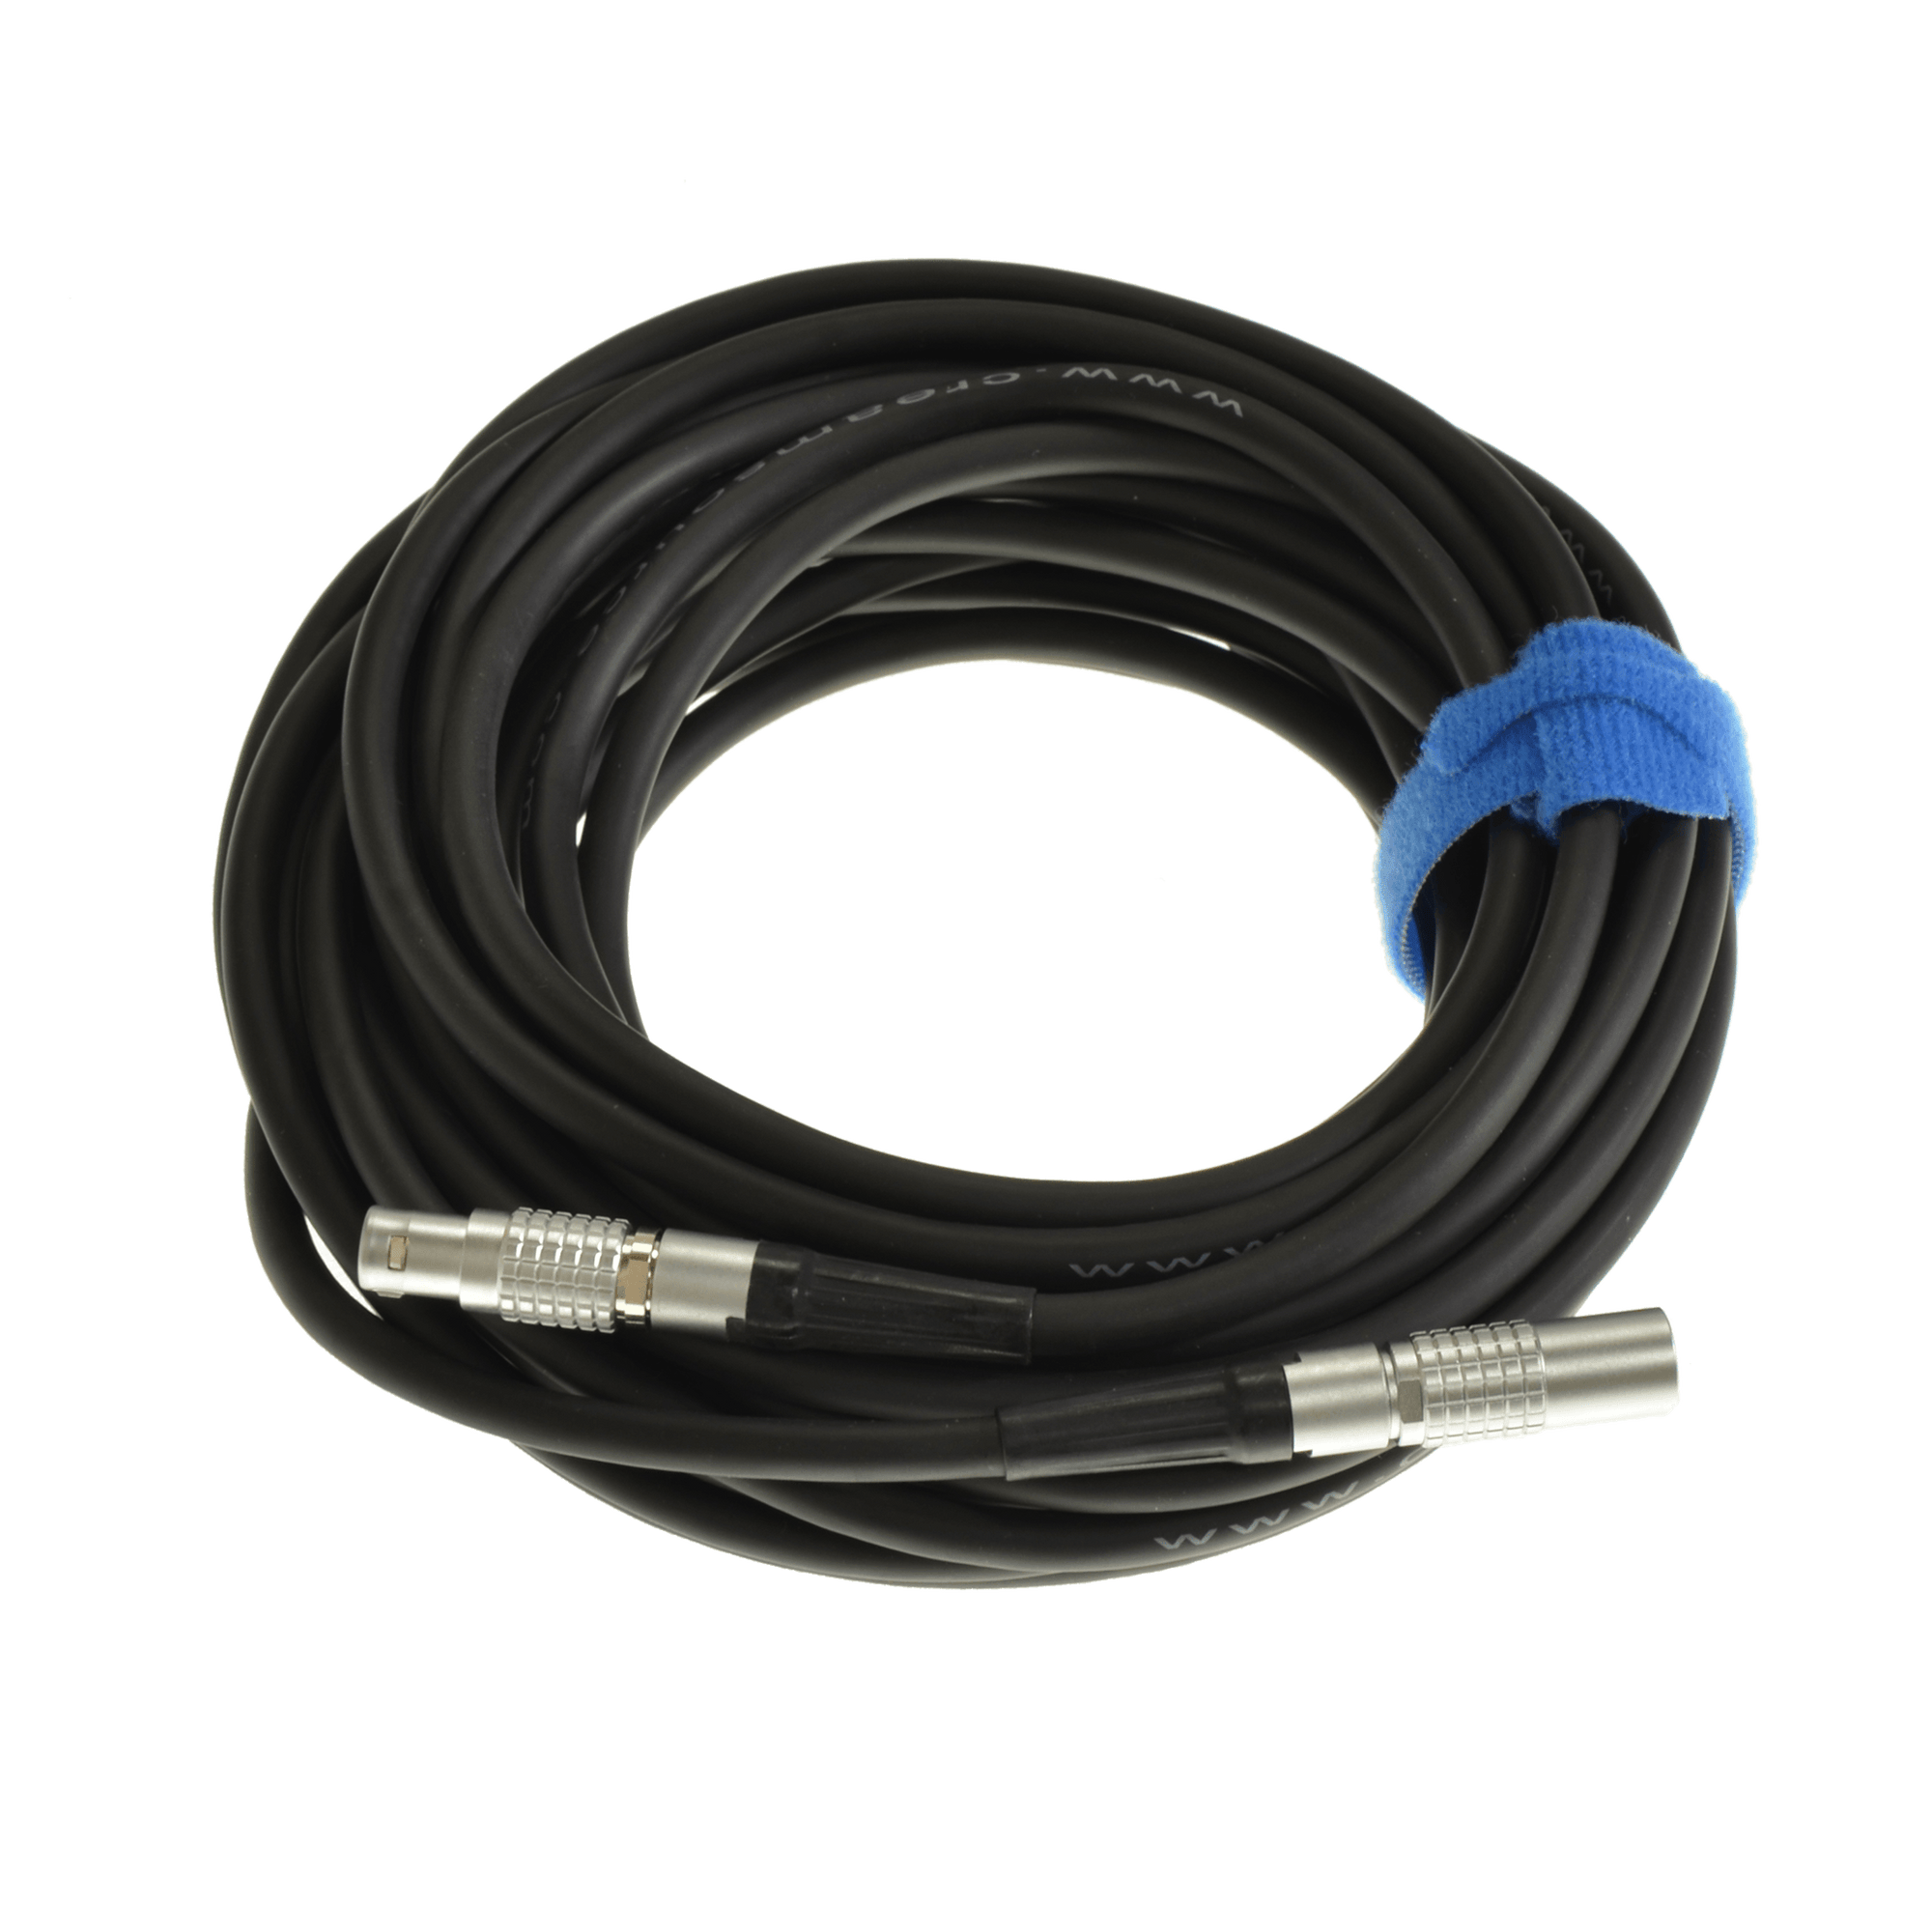 Outsight Creamsource Remote Extension Cable